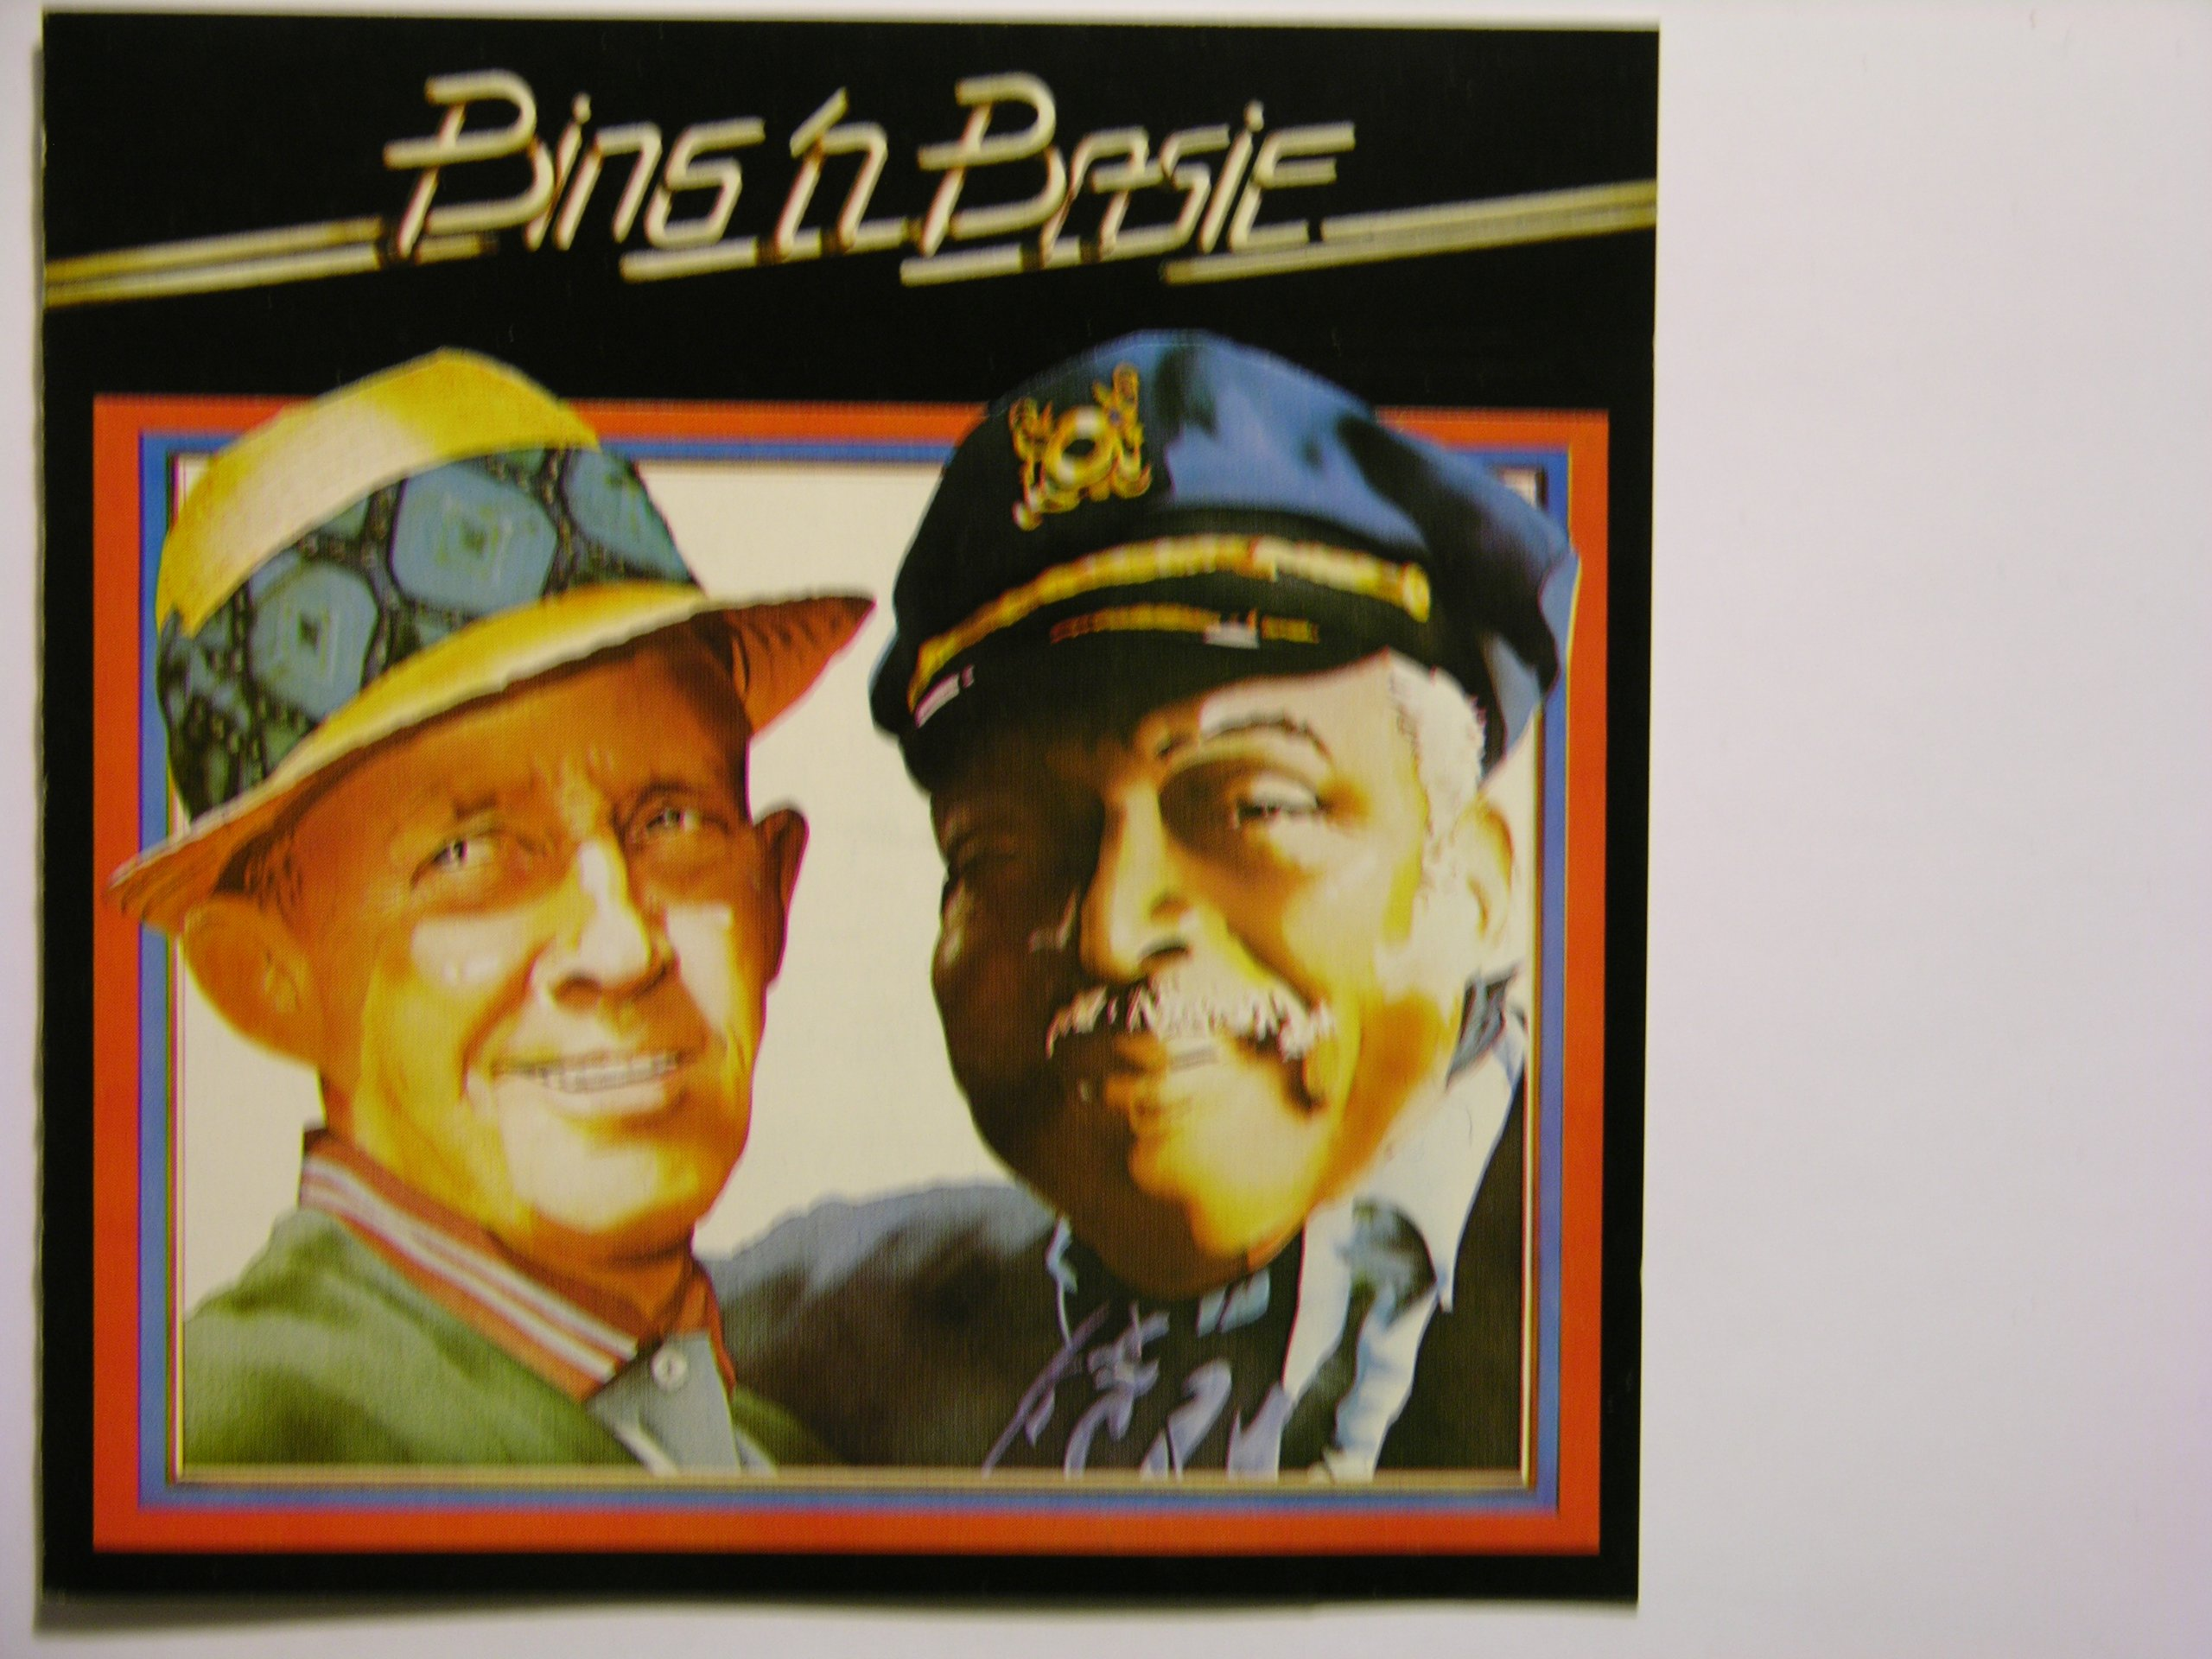 Bing 'n' Basie by Polygram / Emarcy